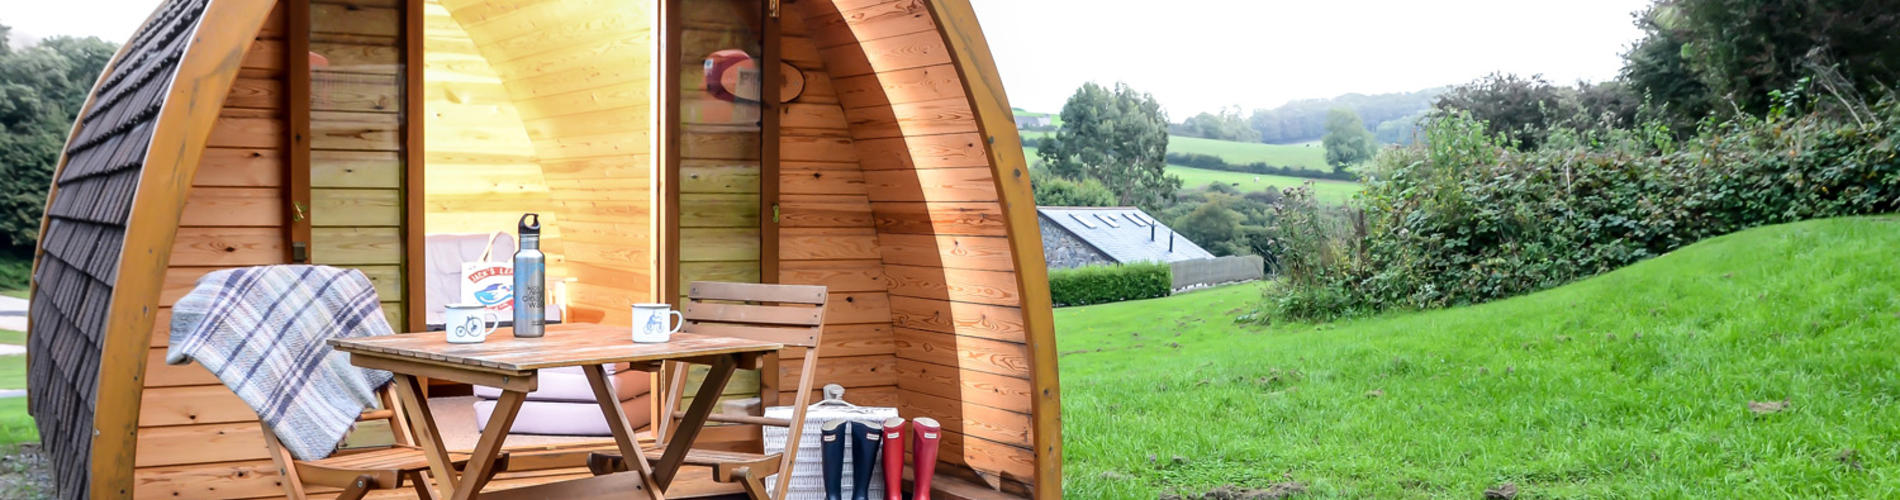 Stay at Whitehill Country Park